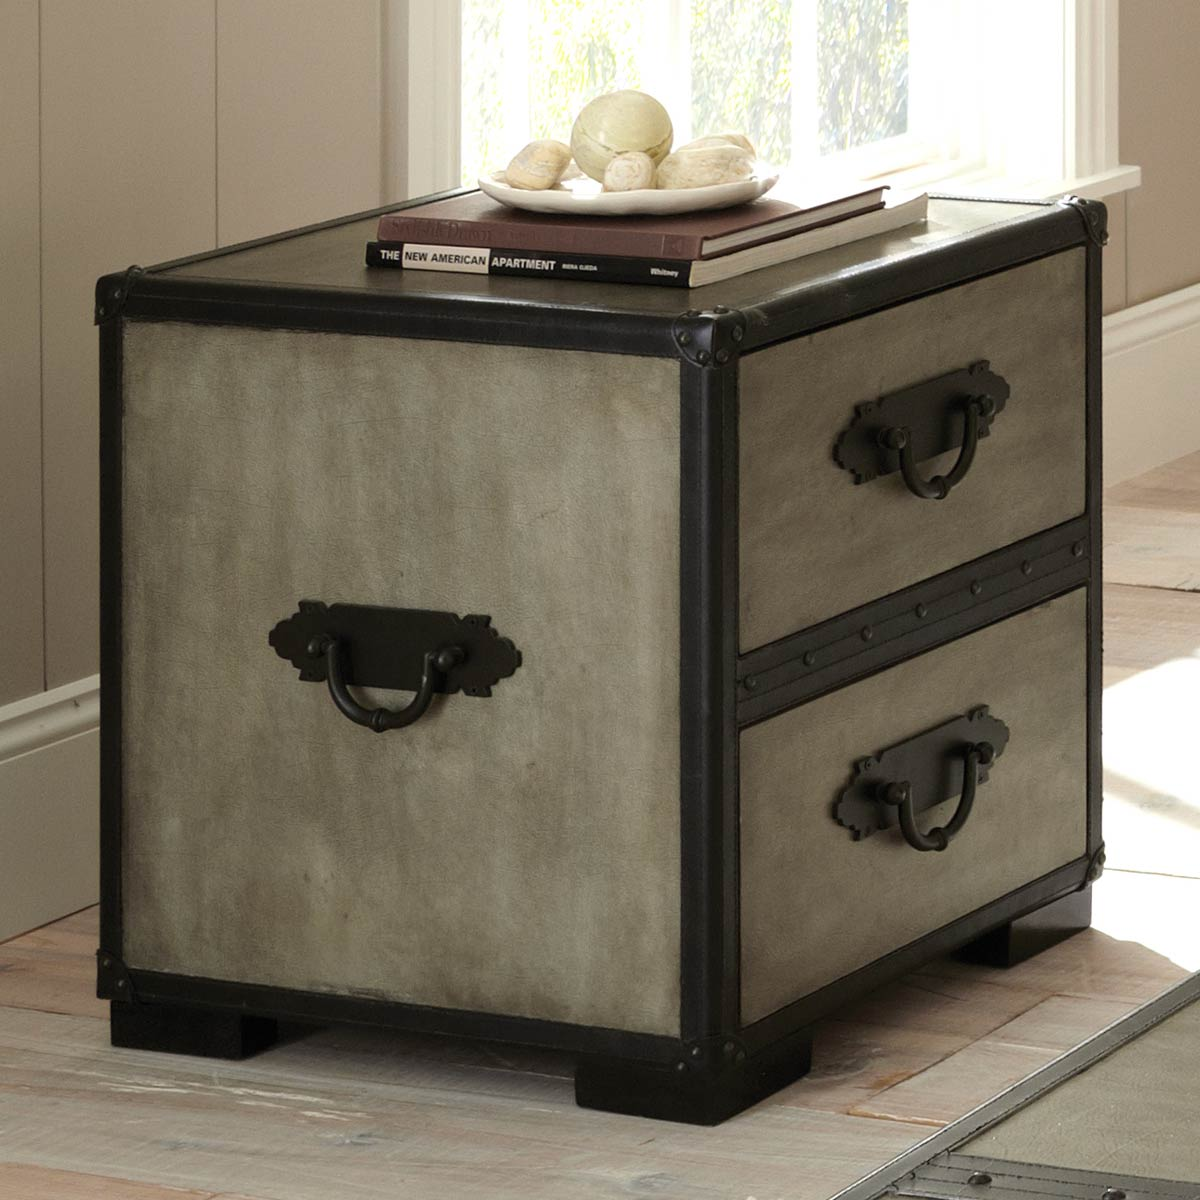 Rowan 2-Drawer End Table - Leather Accents, Gray - SSC-RW300E